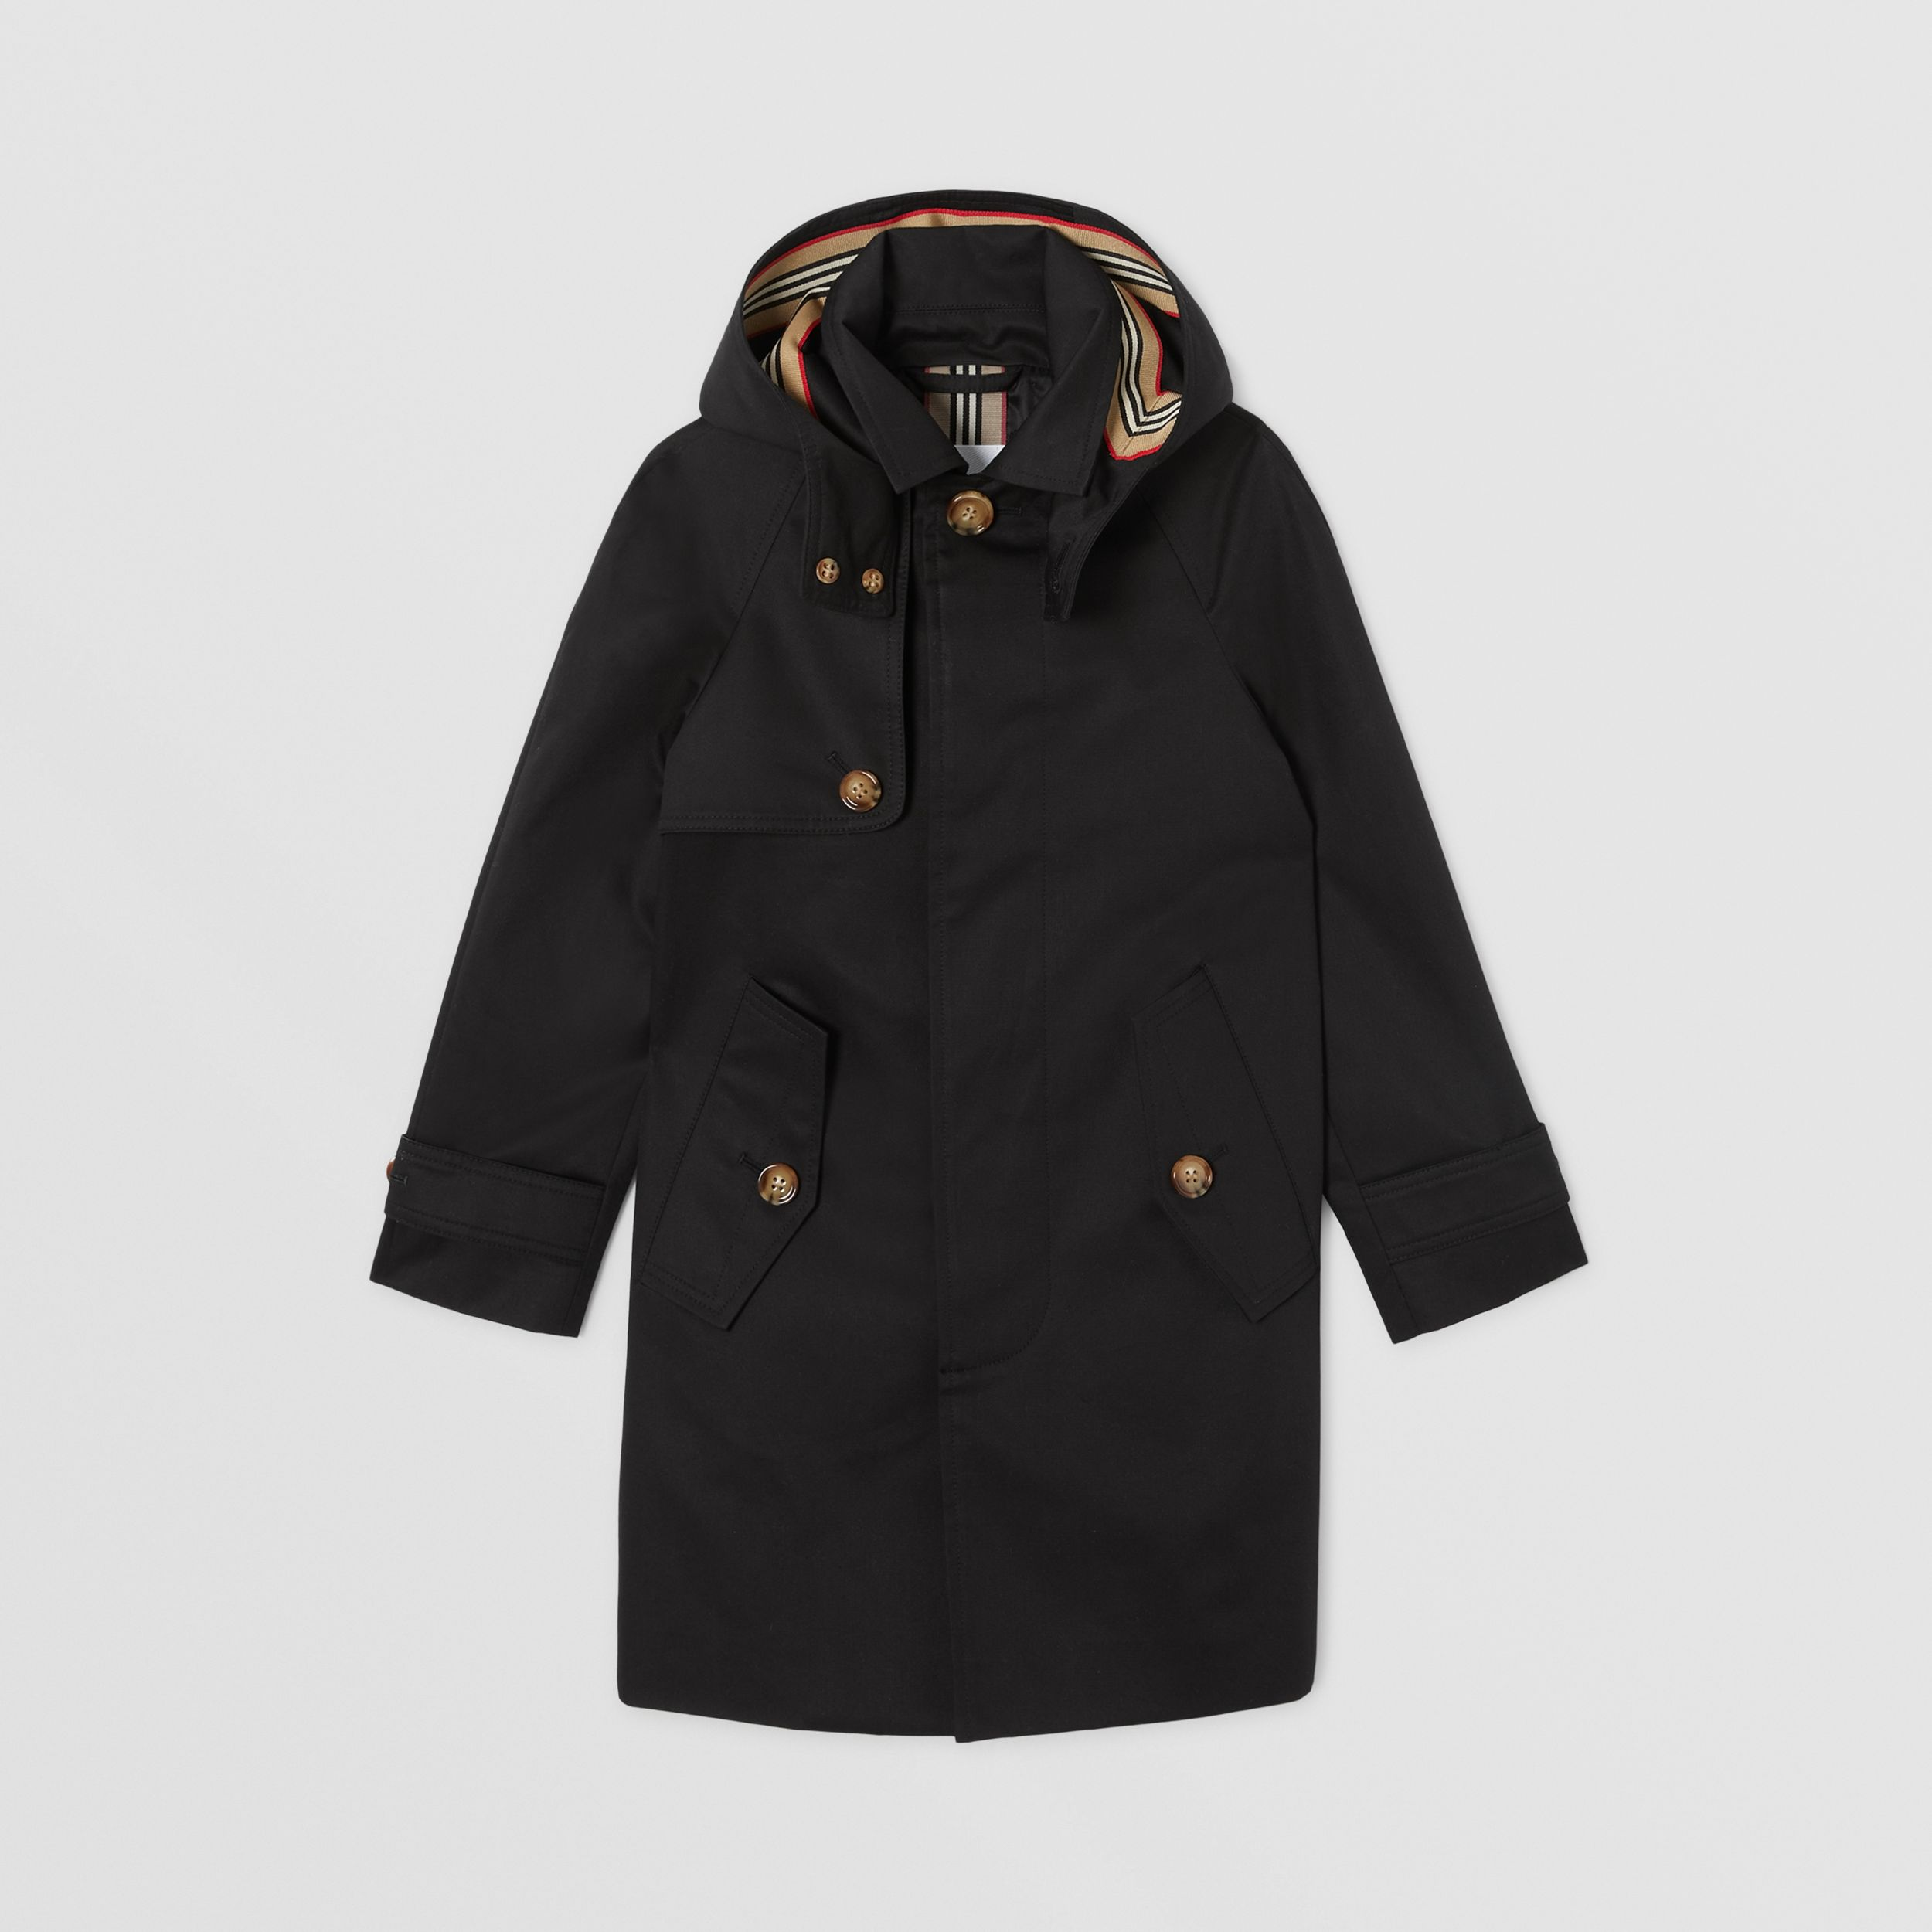 Detachable Hood Icon Stripe Trim Cotton Car Coat in Black | Burberry - 1